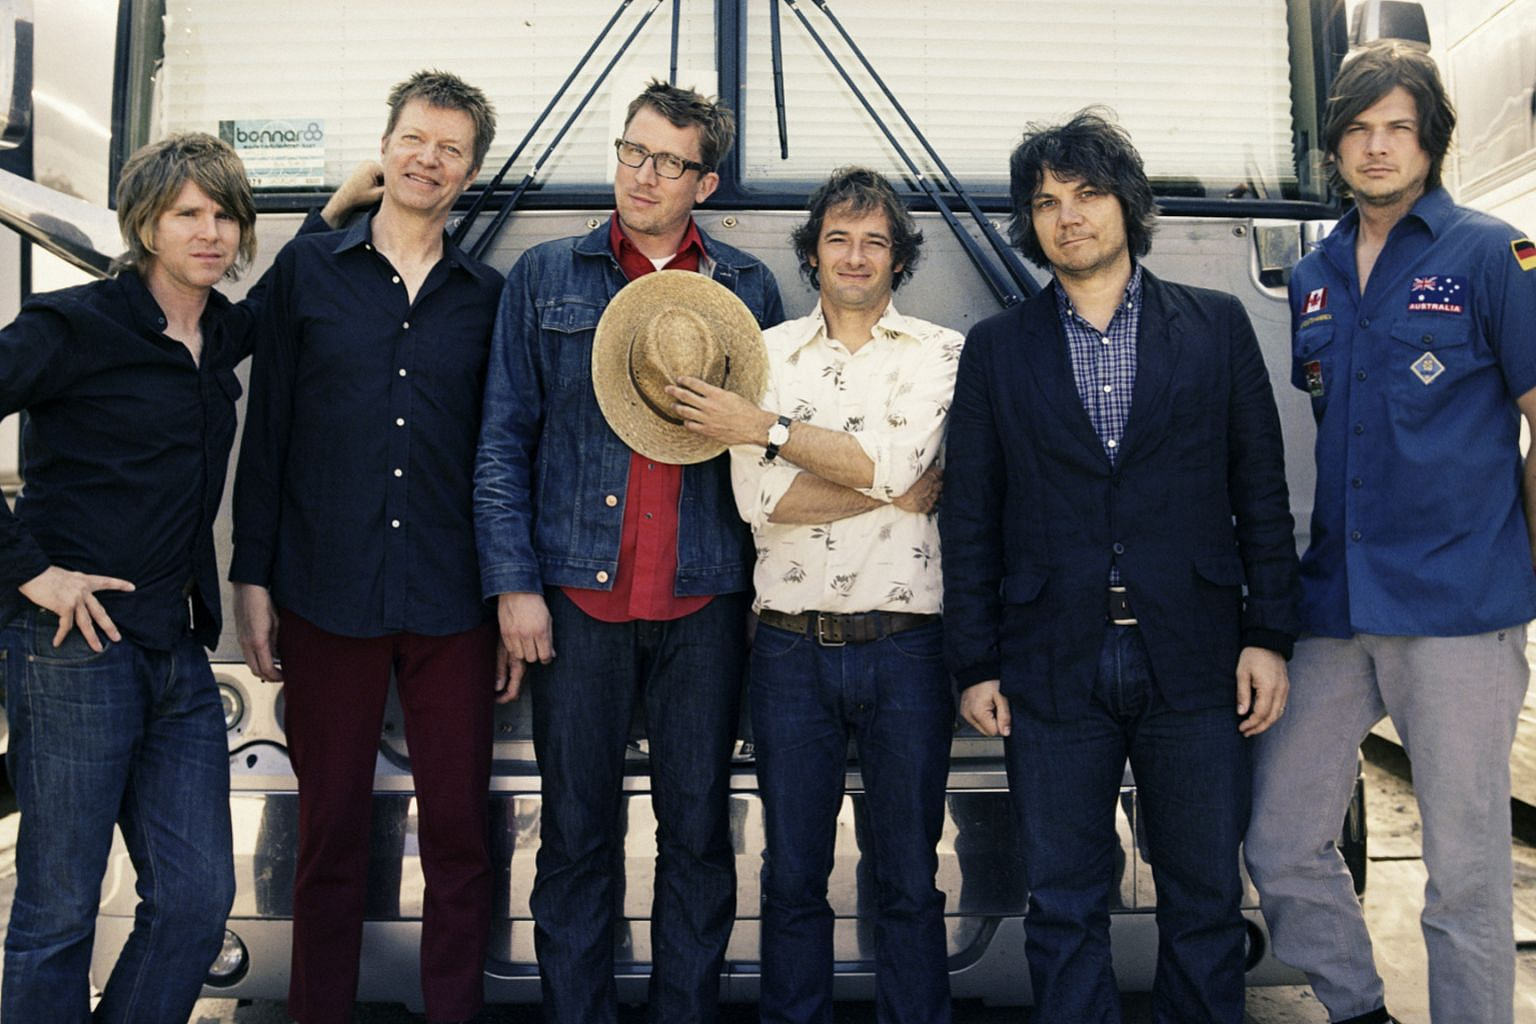 Sandy Lam sings Mayday's Eternal Summer. Jeff Tweedy (second from right) is the frontman of alt-rock band Wilco.